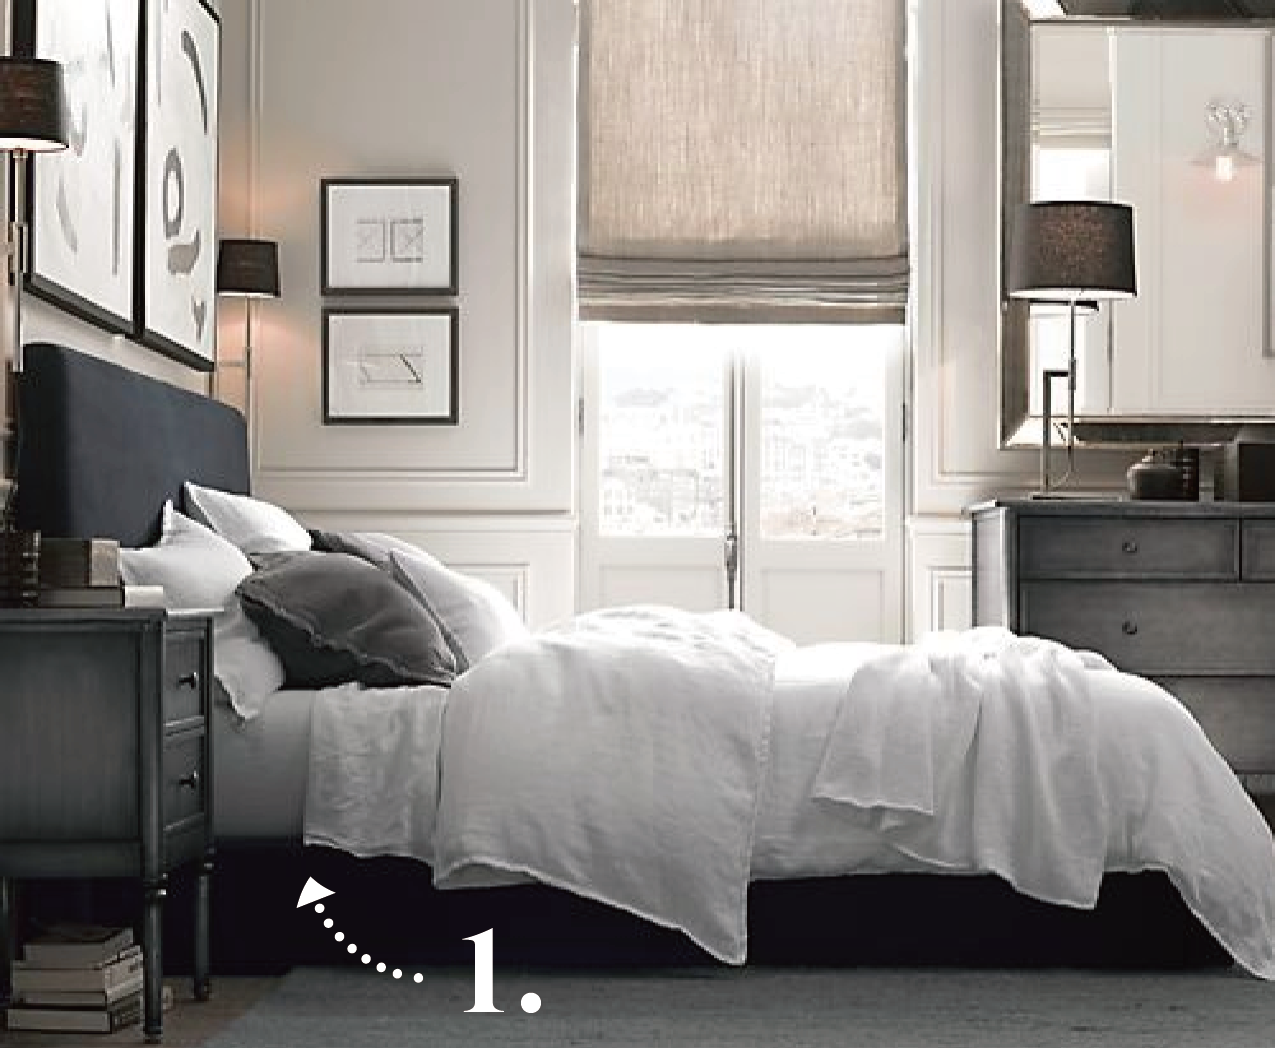 Restoration hardware bedroom - Restoration Hardware Catalogue Bedroom Interiors Blog Restoration Hardware Catalogue Bedroom Interiors Blog Restoration Hardware Bedroom